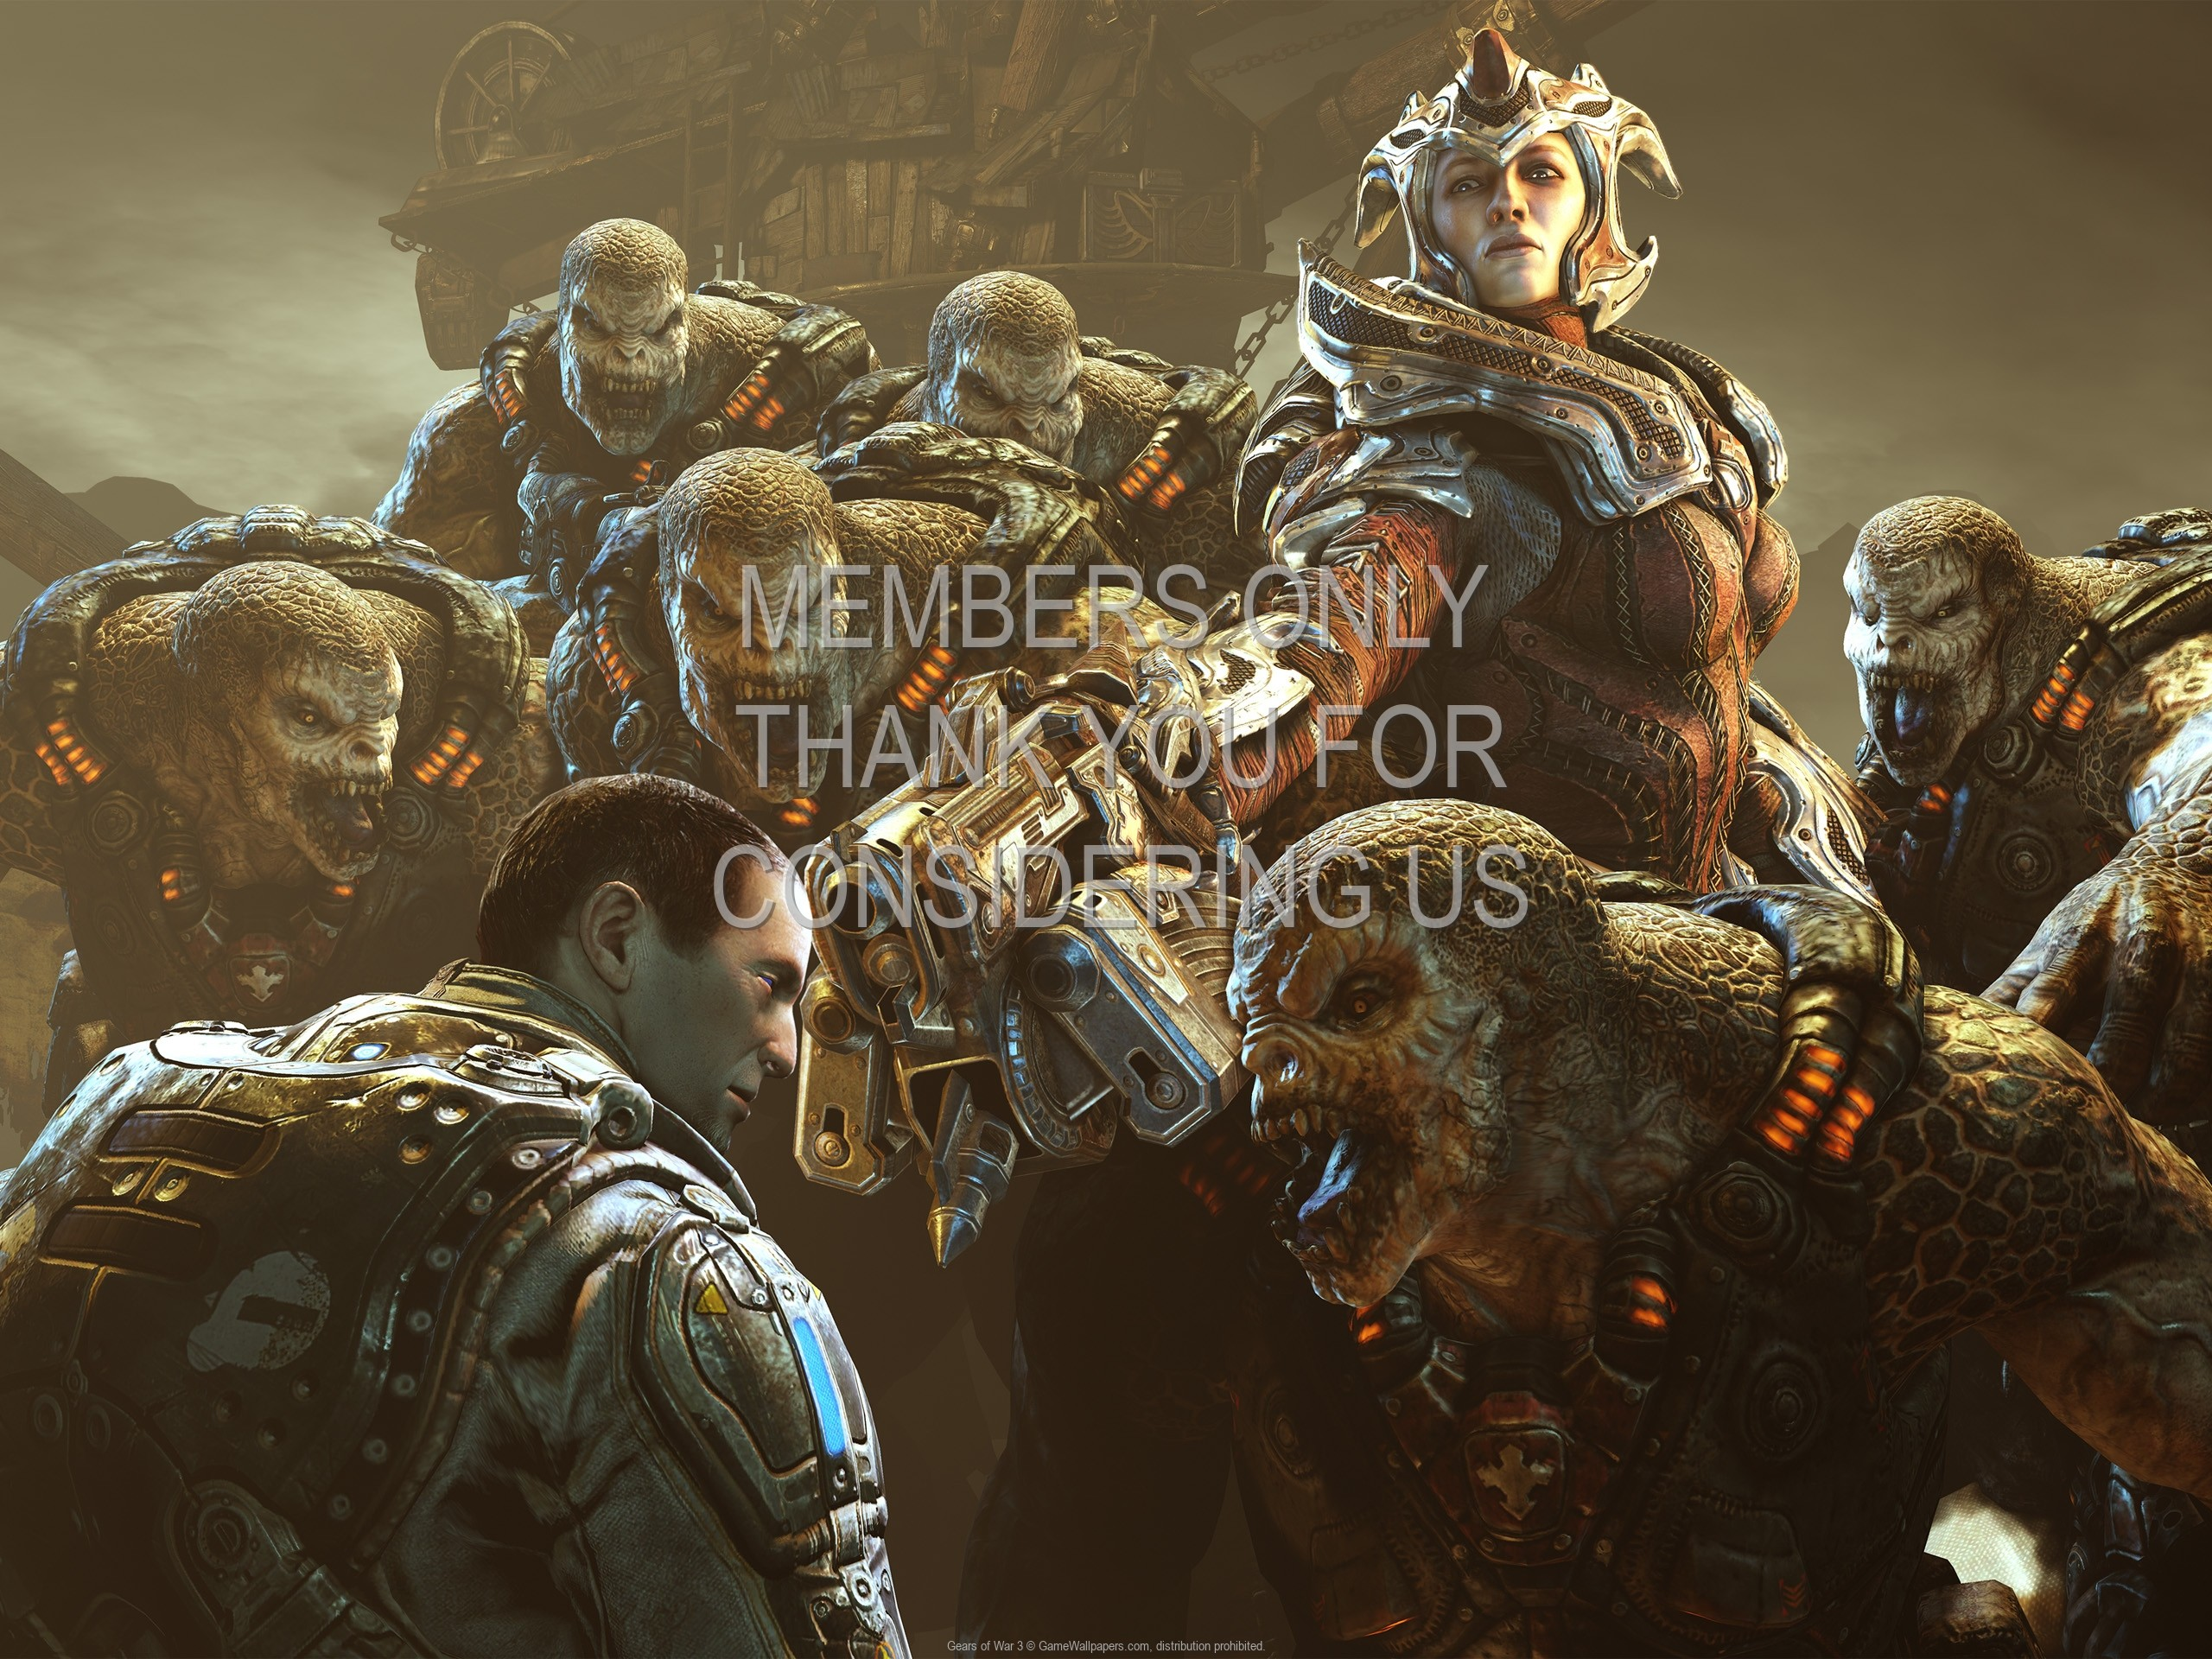 2560x1920 Gears of War 3 wallpaper 05 @ 1920x1080